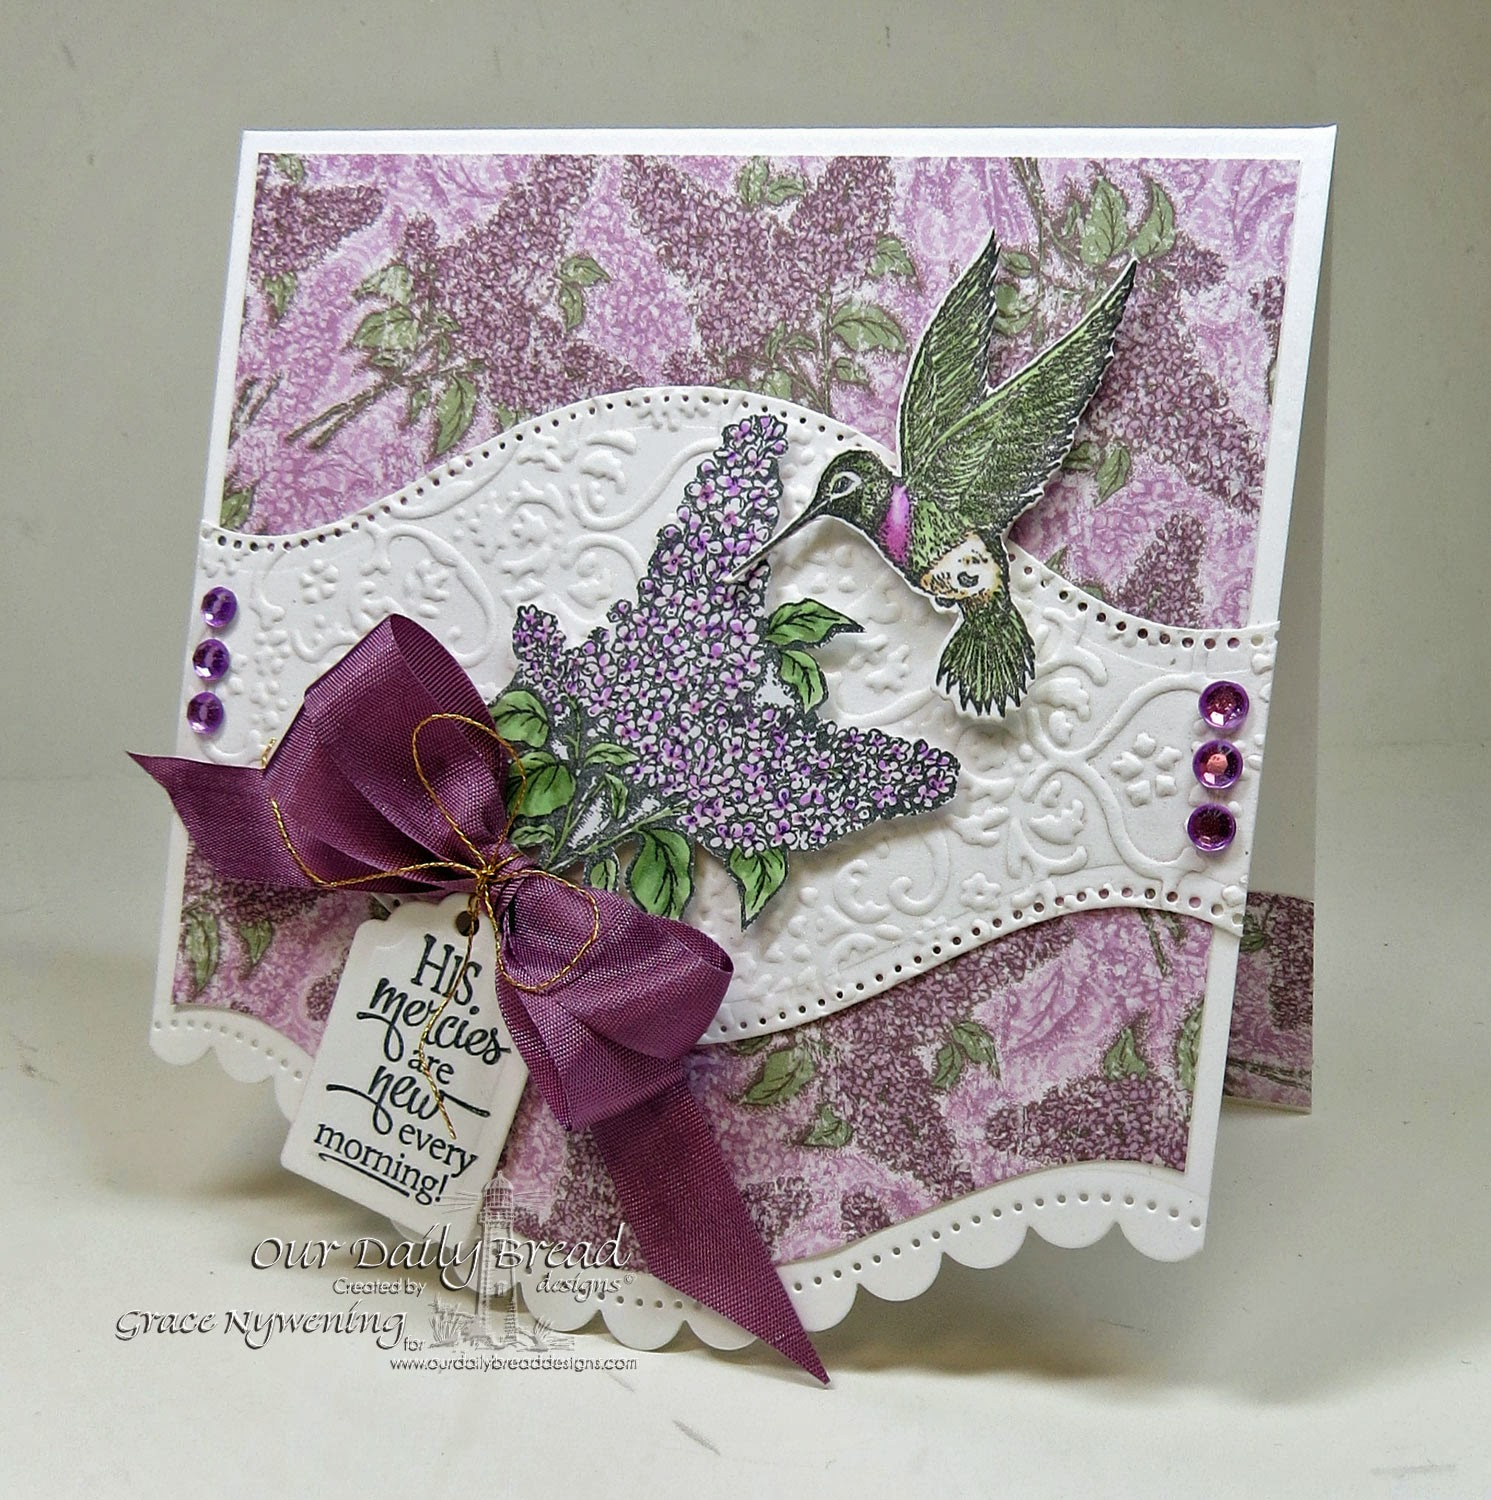 Our Daily Bread designs stamps Sentiment Collectiion 2, Lilac, ODBD Blooming Garden Paper Colection, ODBD Hummingbird single stamp and ODBD die, desisnged by Grace Nywening